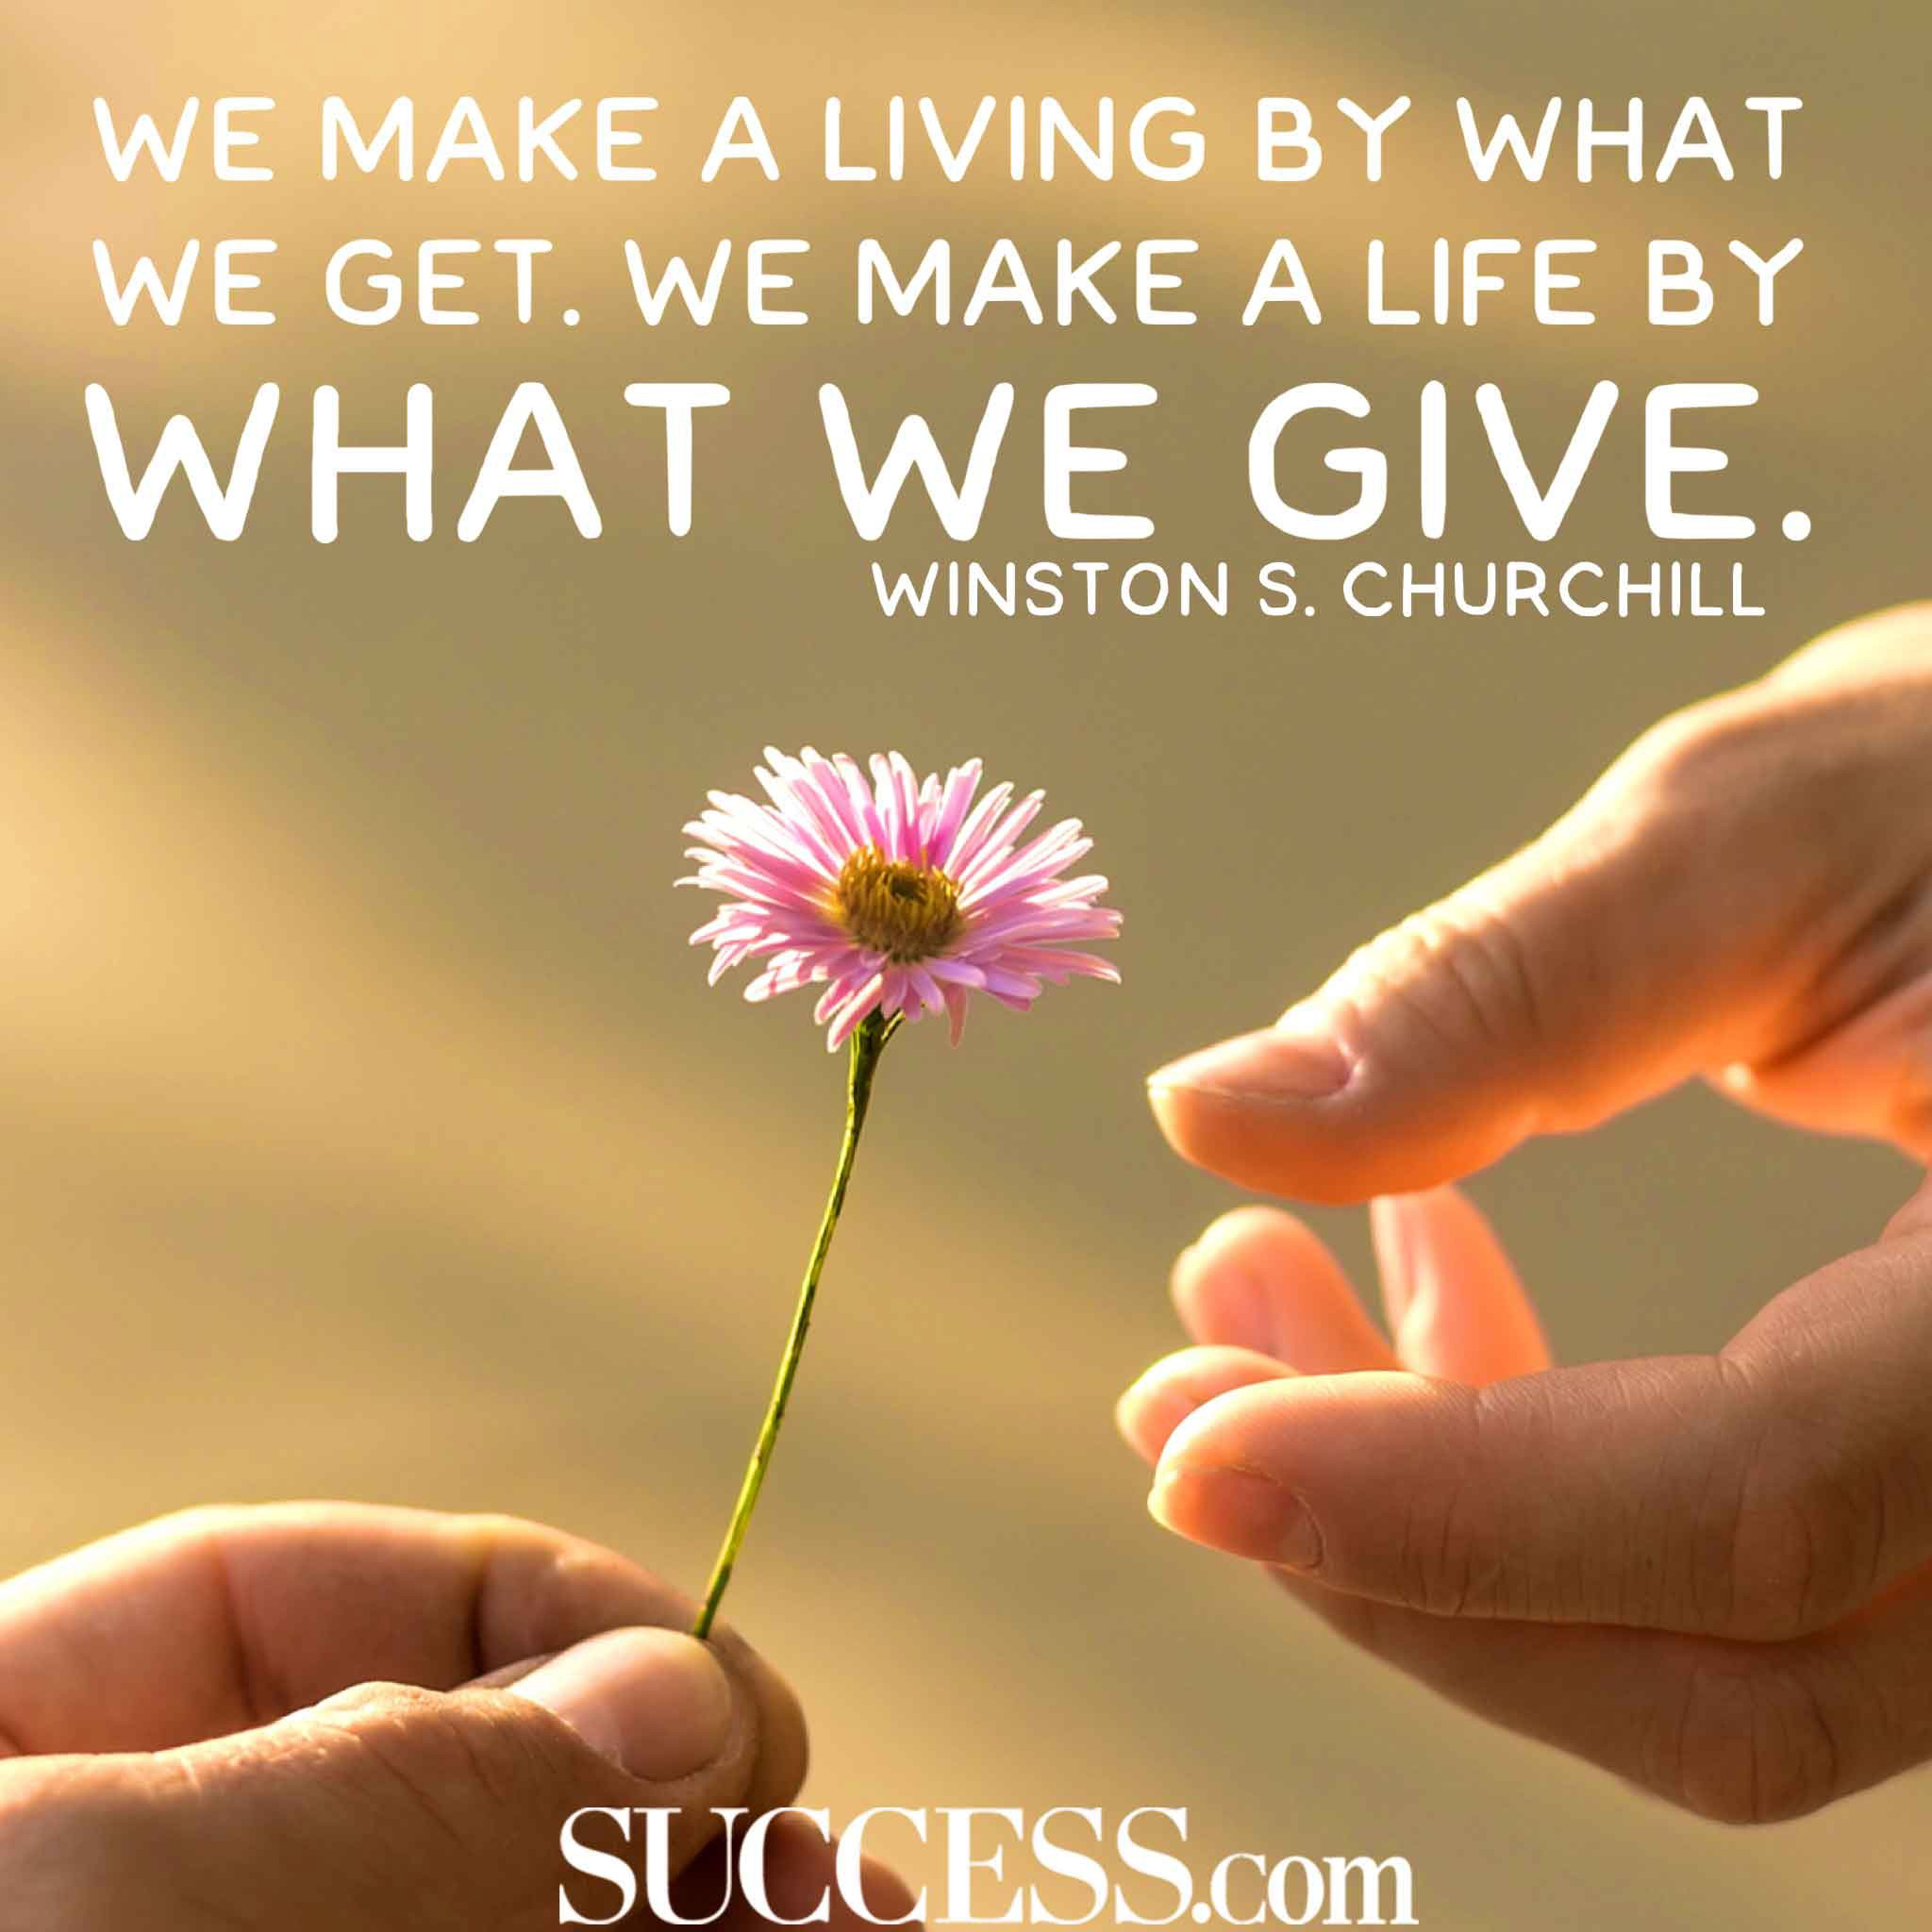 The Joy Of Giving The More You Give The More You Receive By Anirudh B Live Your Life On Purpose Medium